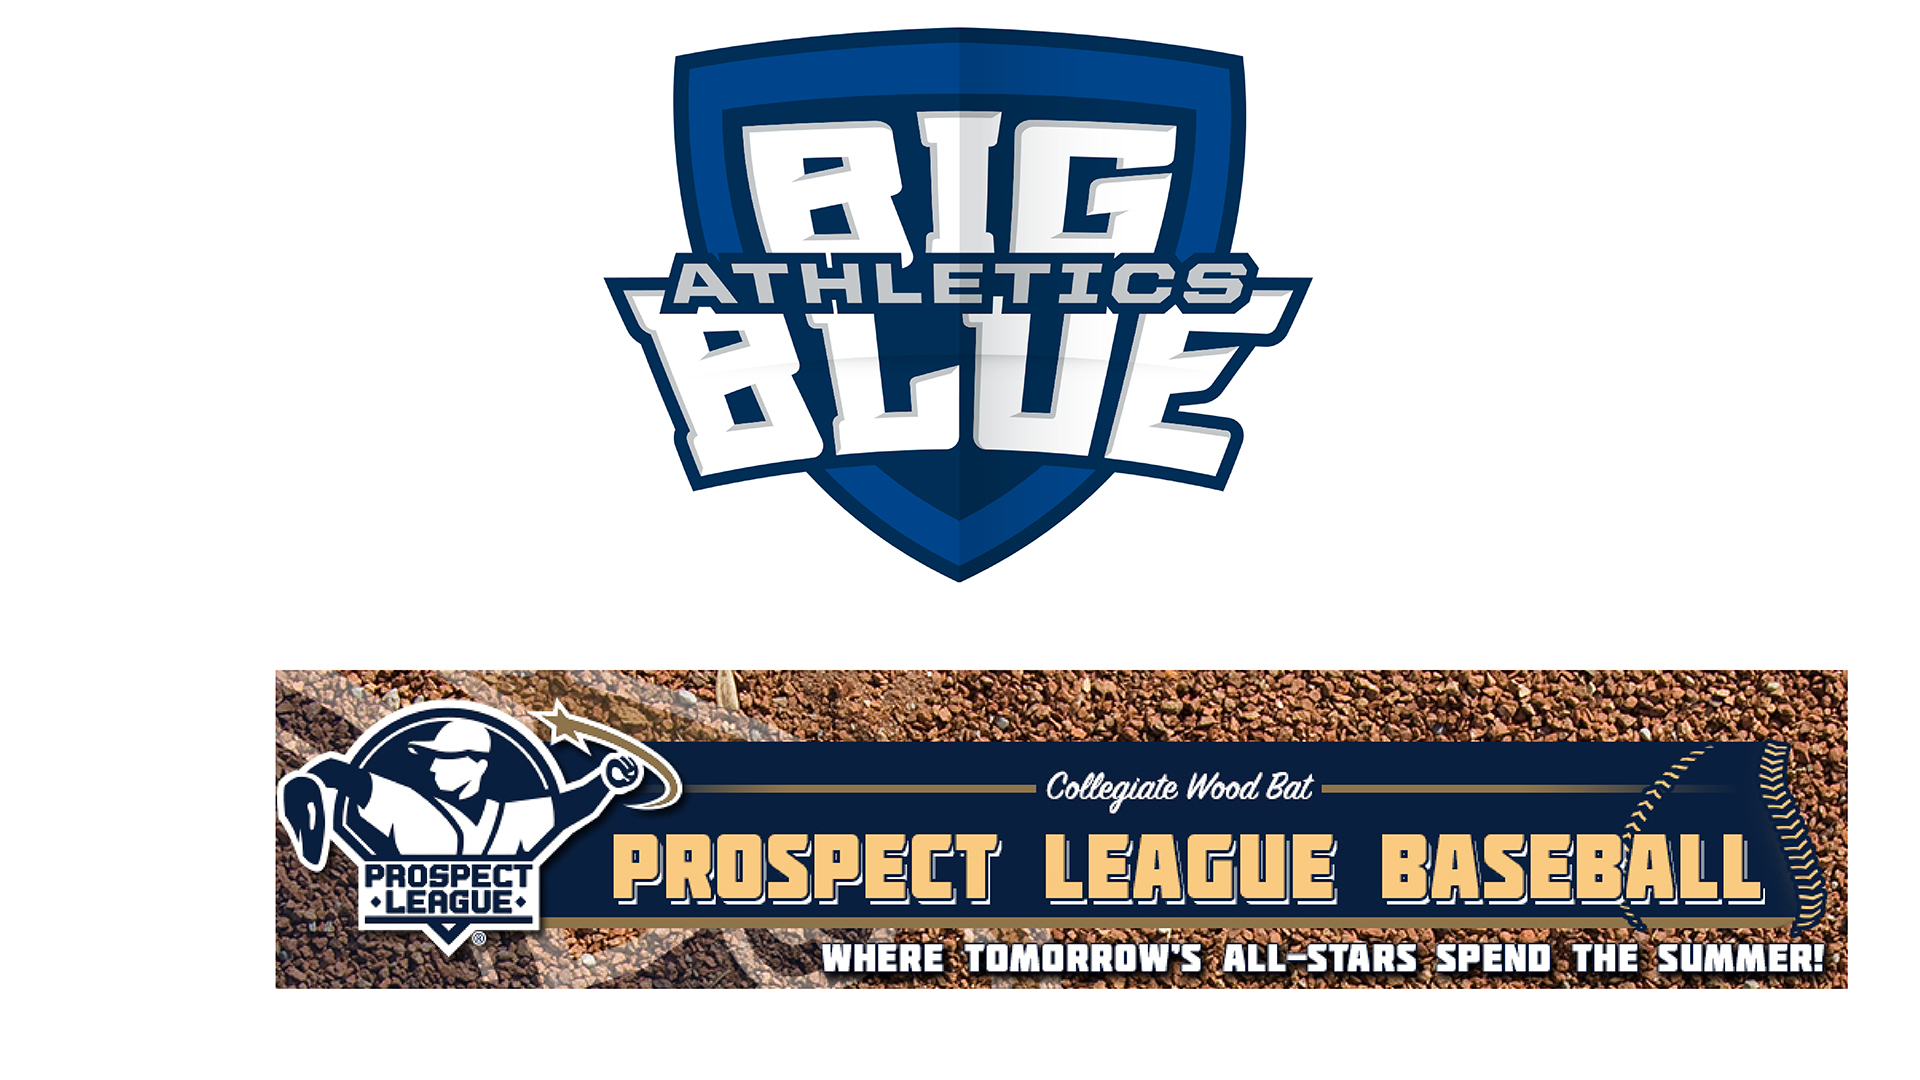 Millikin Exploring Prospect League Opportunity - Millikin University